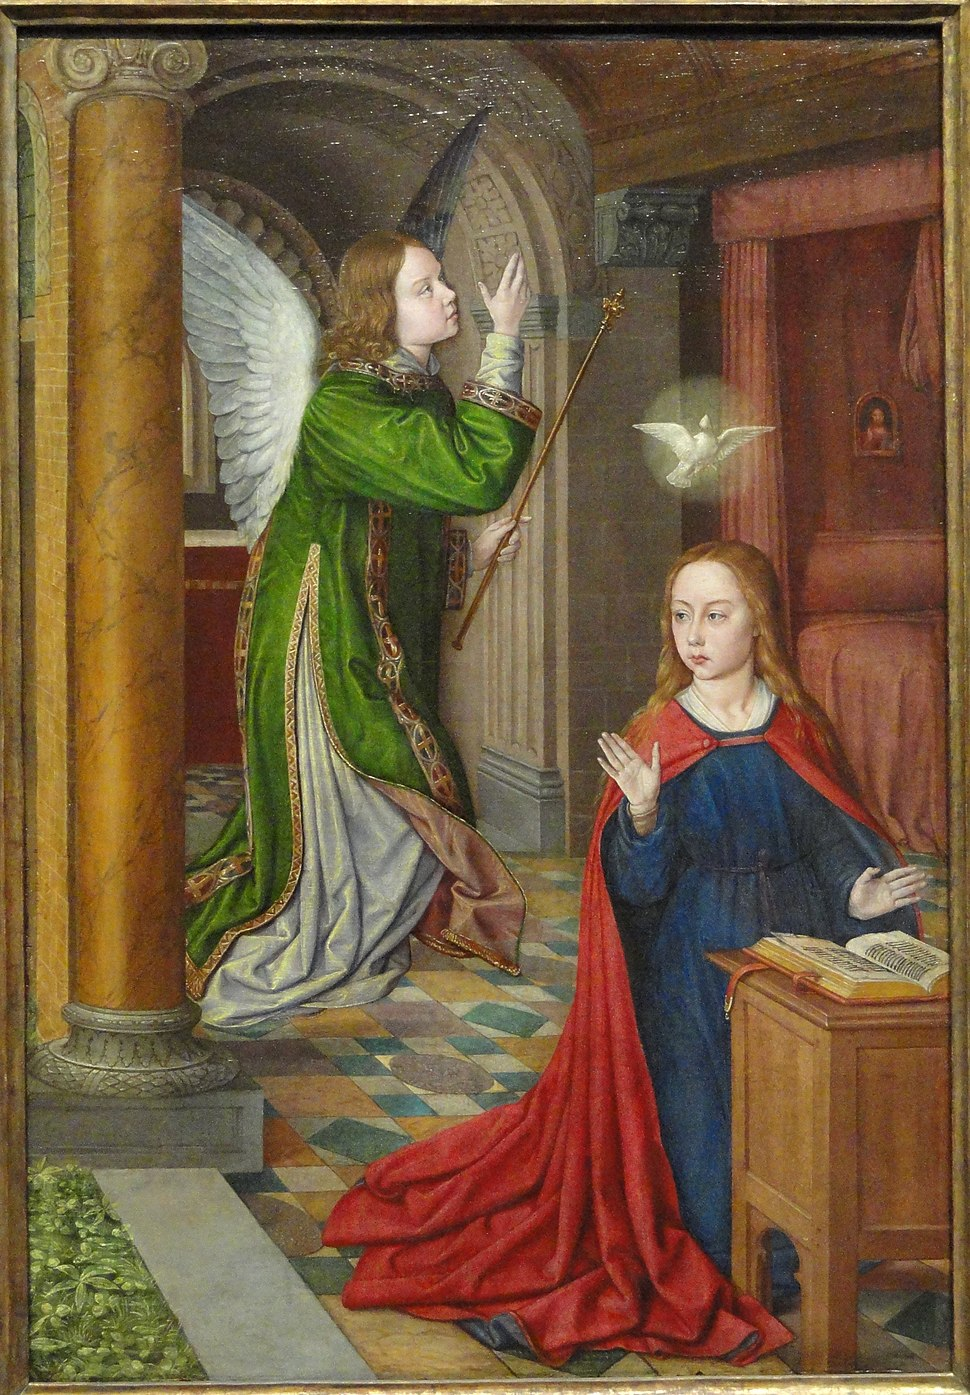 The Annunciation, 1490-1495, by Jean Hey (Master of Moulins) - Art Institute of Chicago - DSC09637